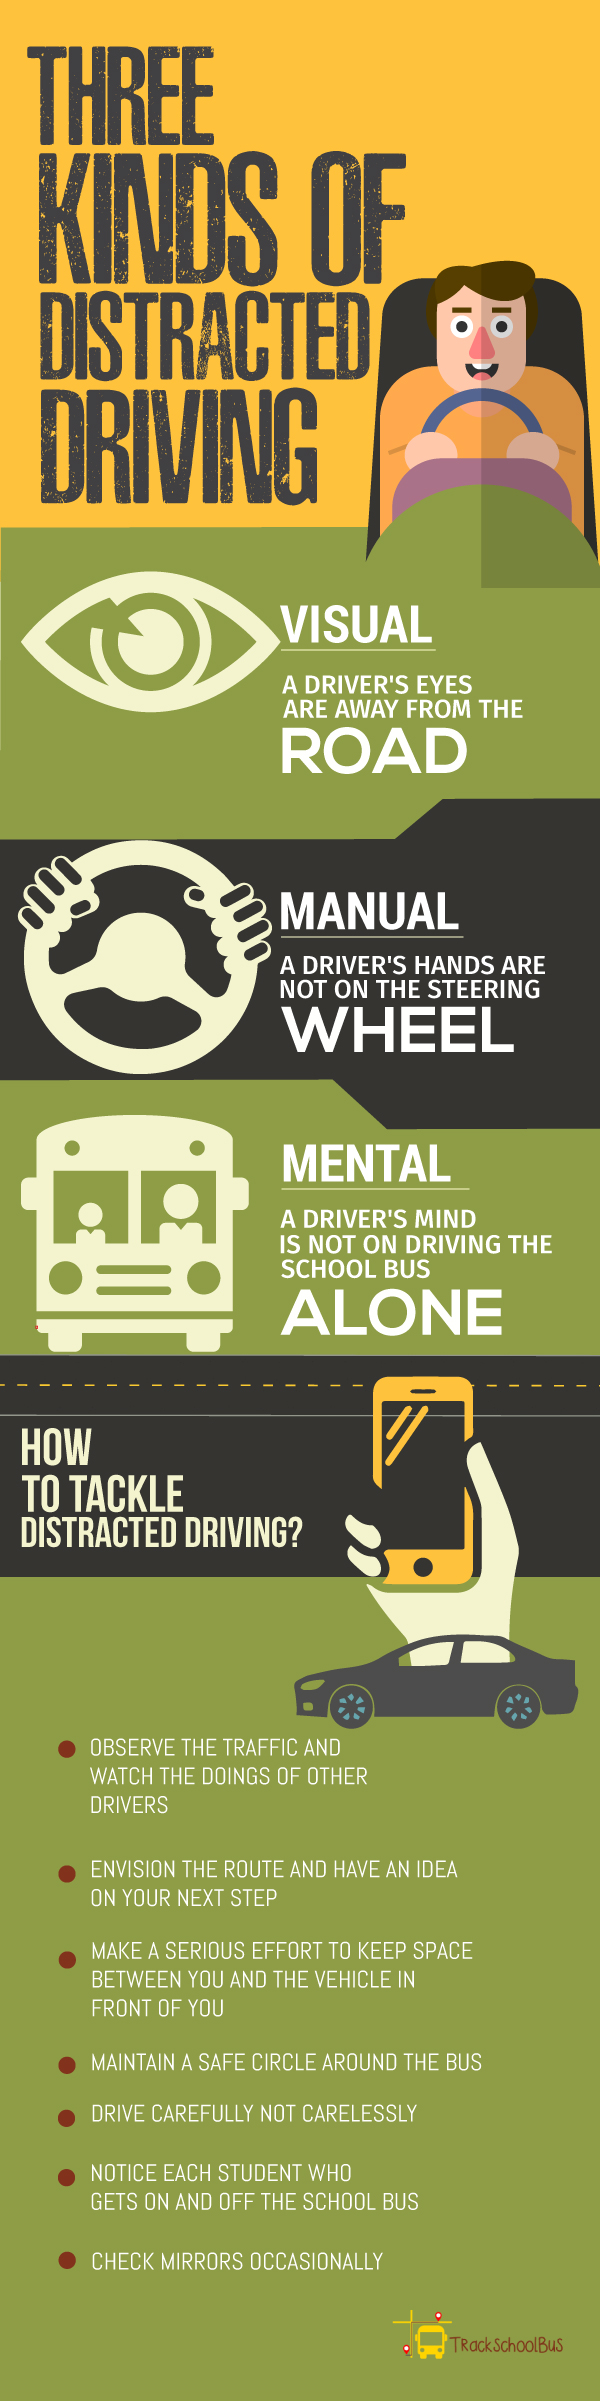 School Bus Safety Precautions